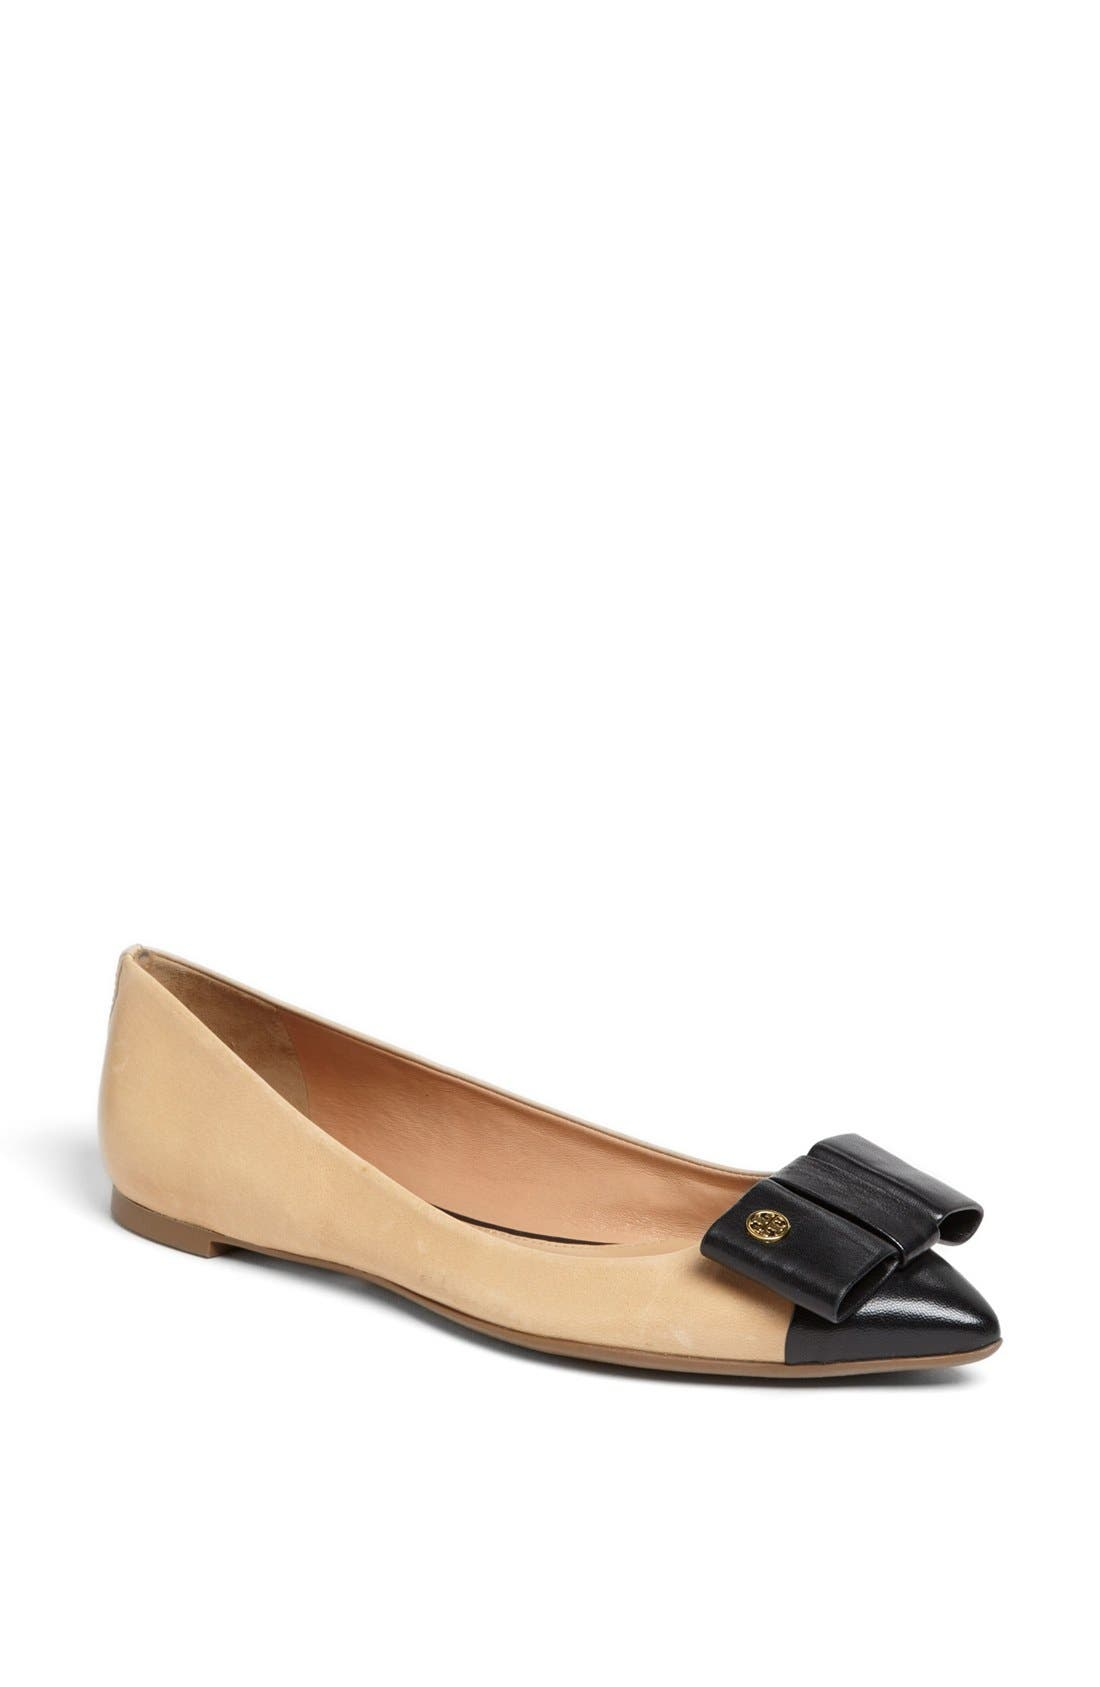 Main Image - Tory Burch 'Aimee' Flat (Online Only)